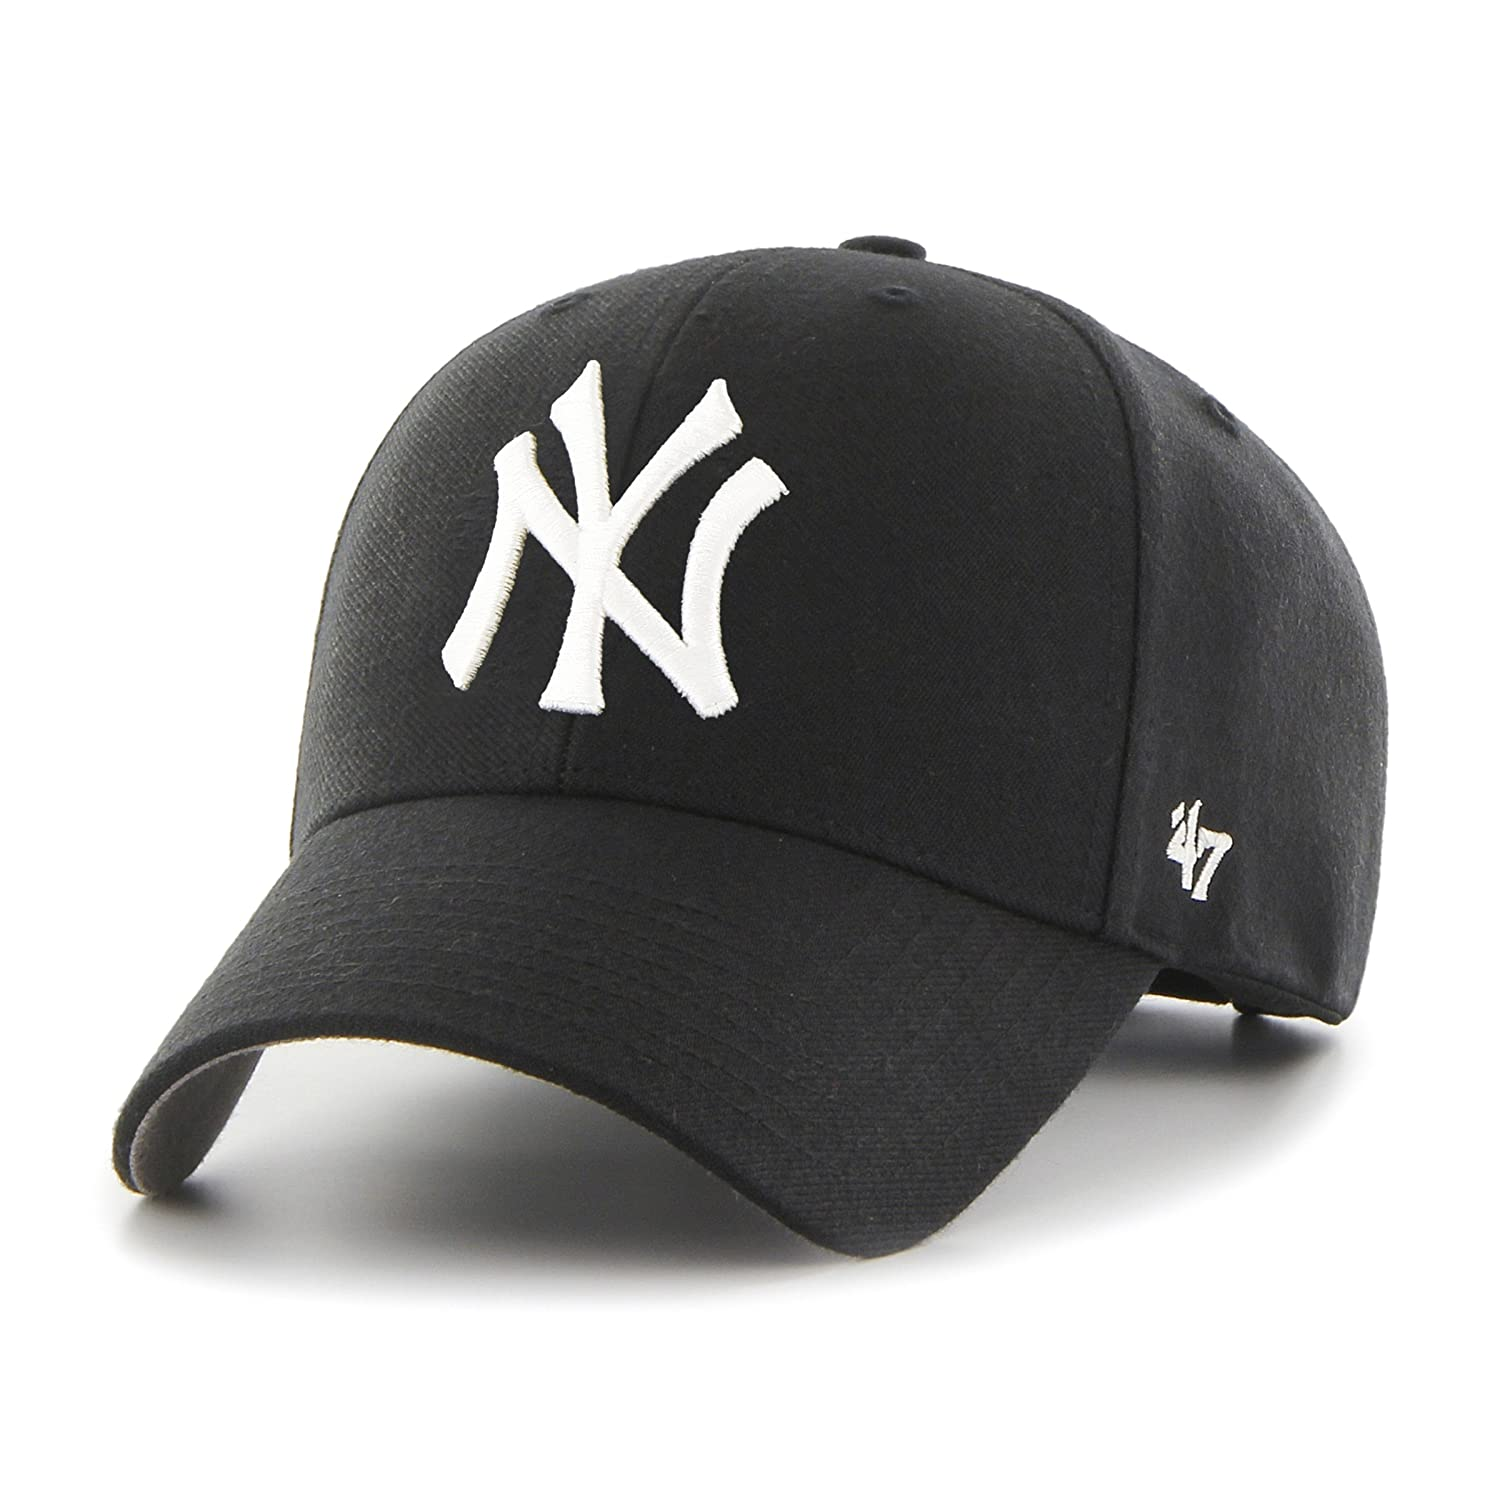 '47 Brand MLB New York Yankees Cap Black